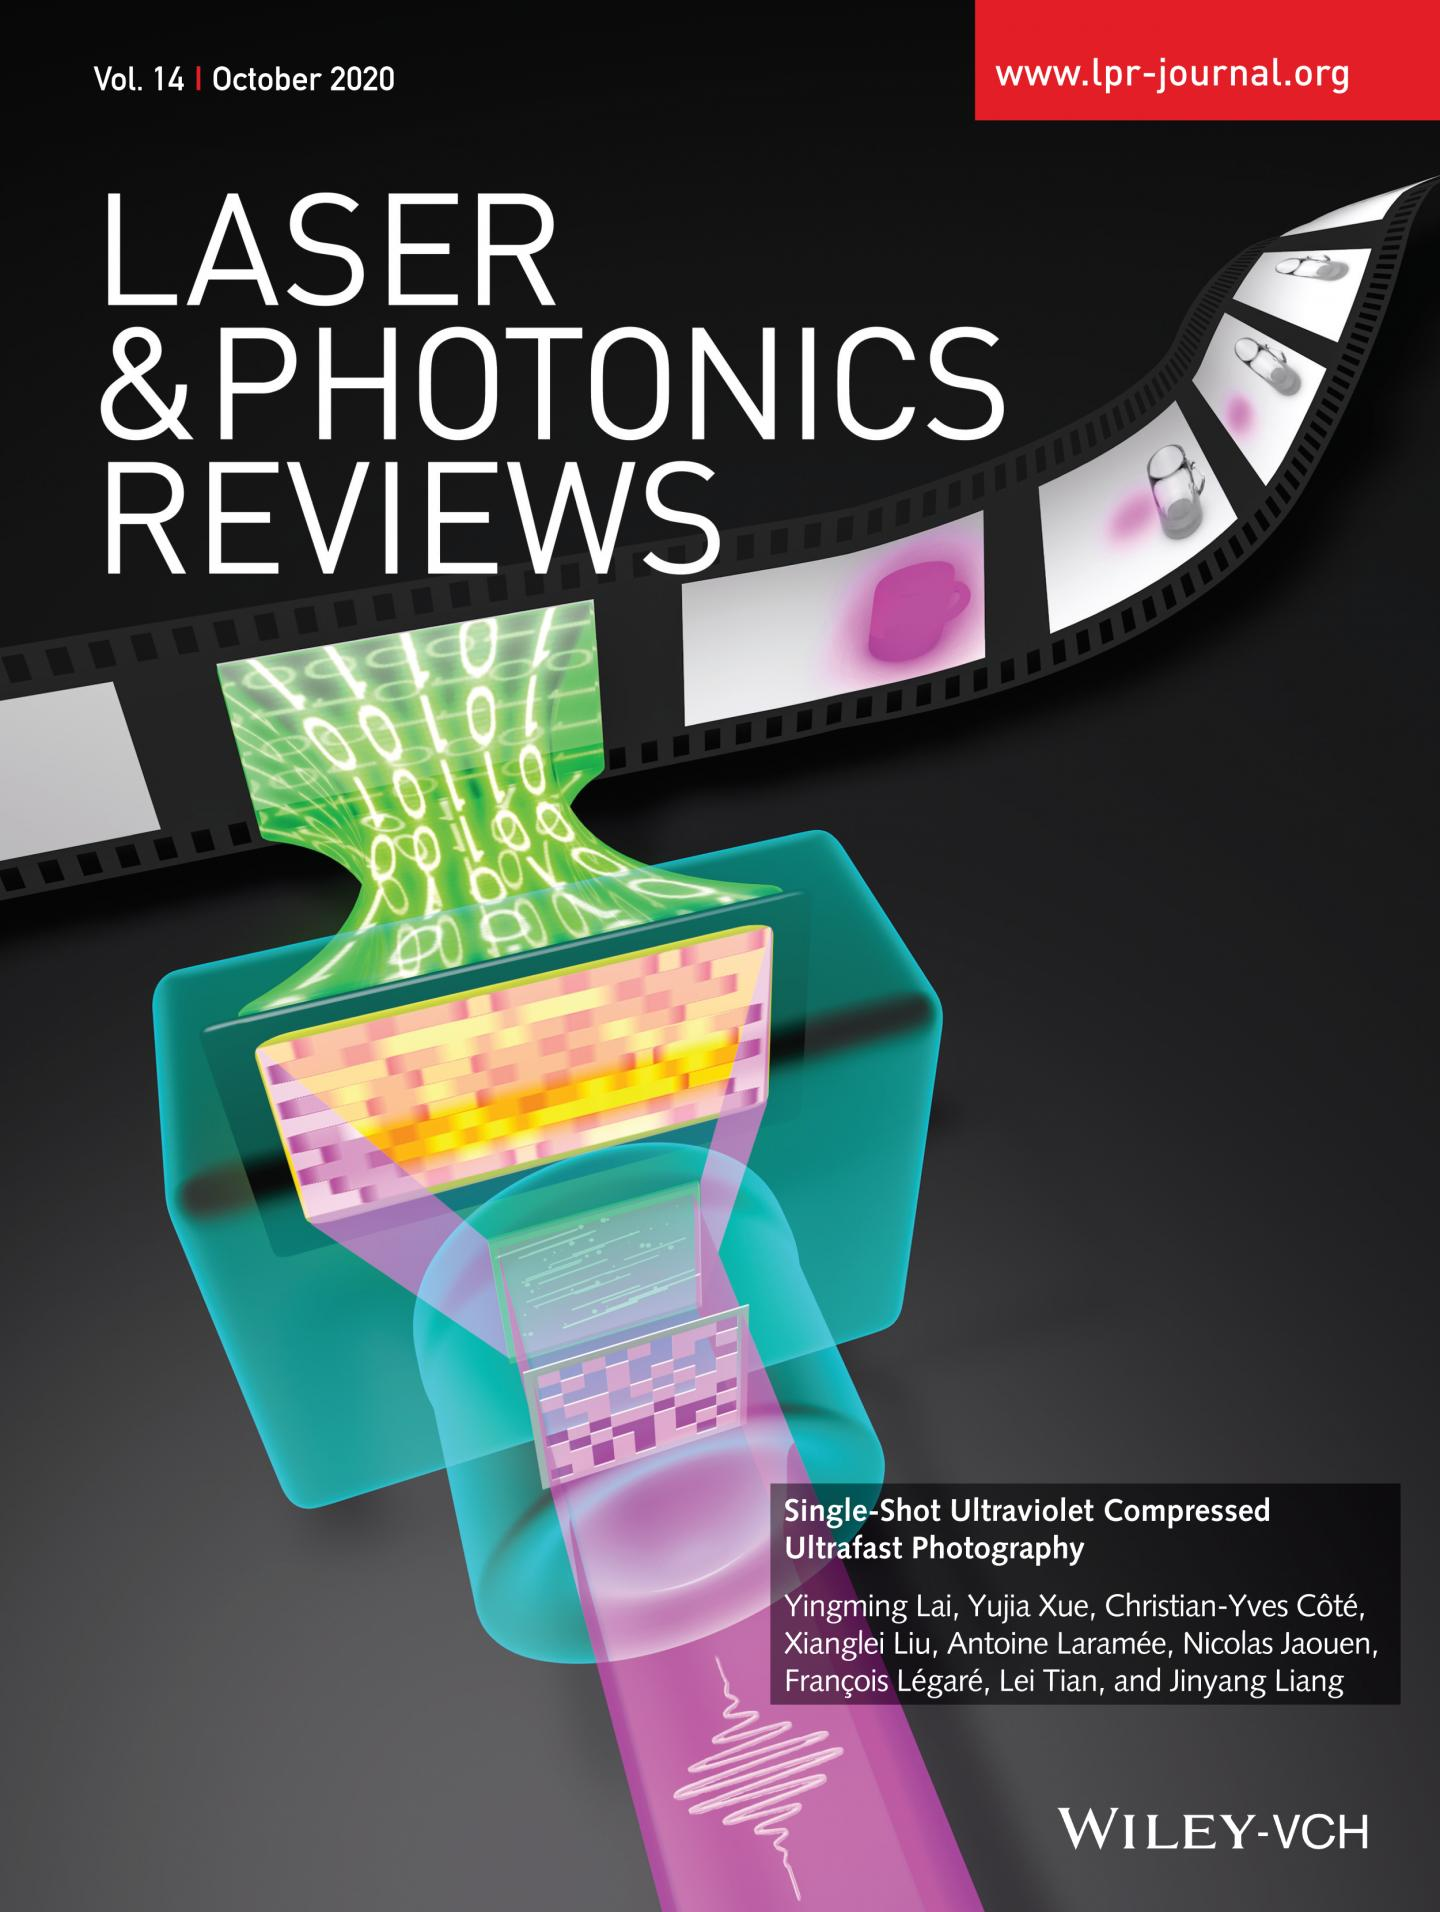 Cover of the 10th issue of the journal Laser & Photonics Reviews